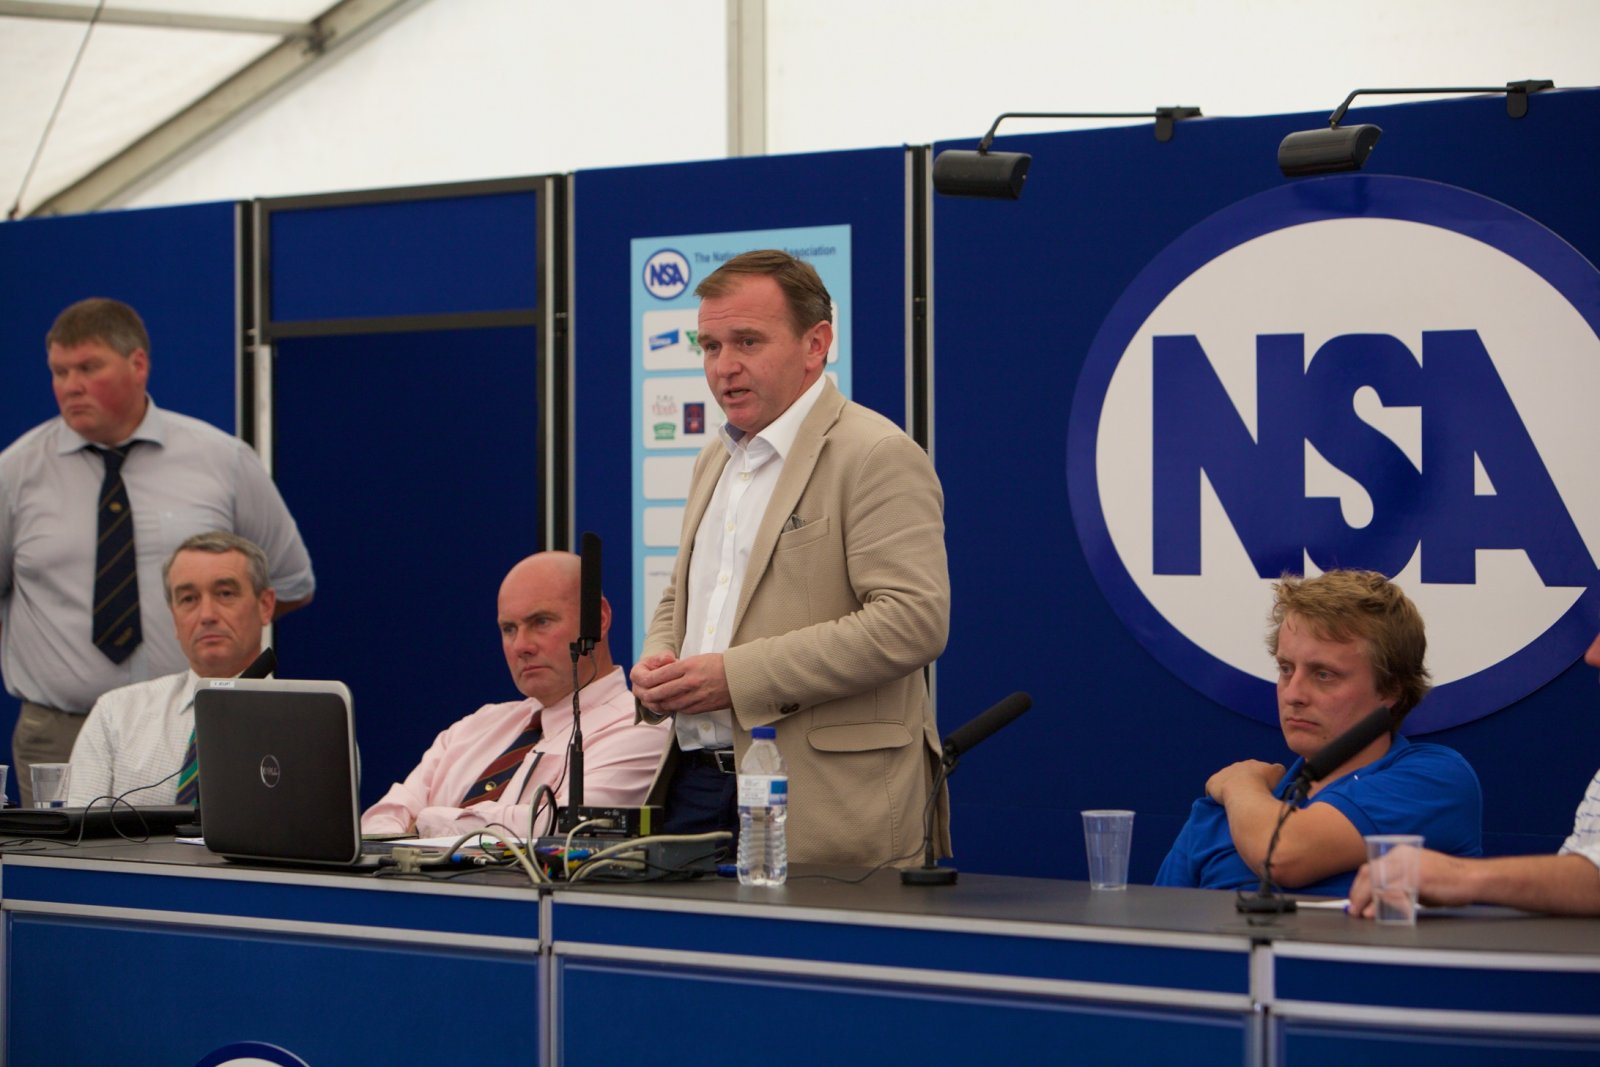 Farming minister George Eustice joined a panel discussion about the future of direct payments for farmers